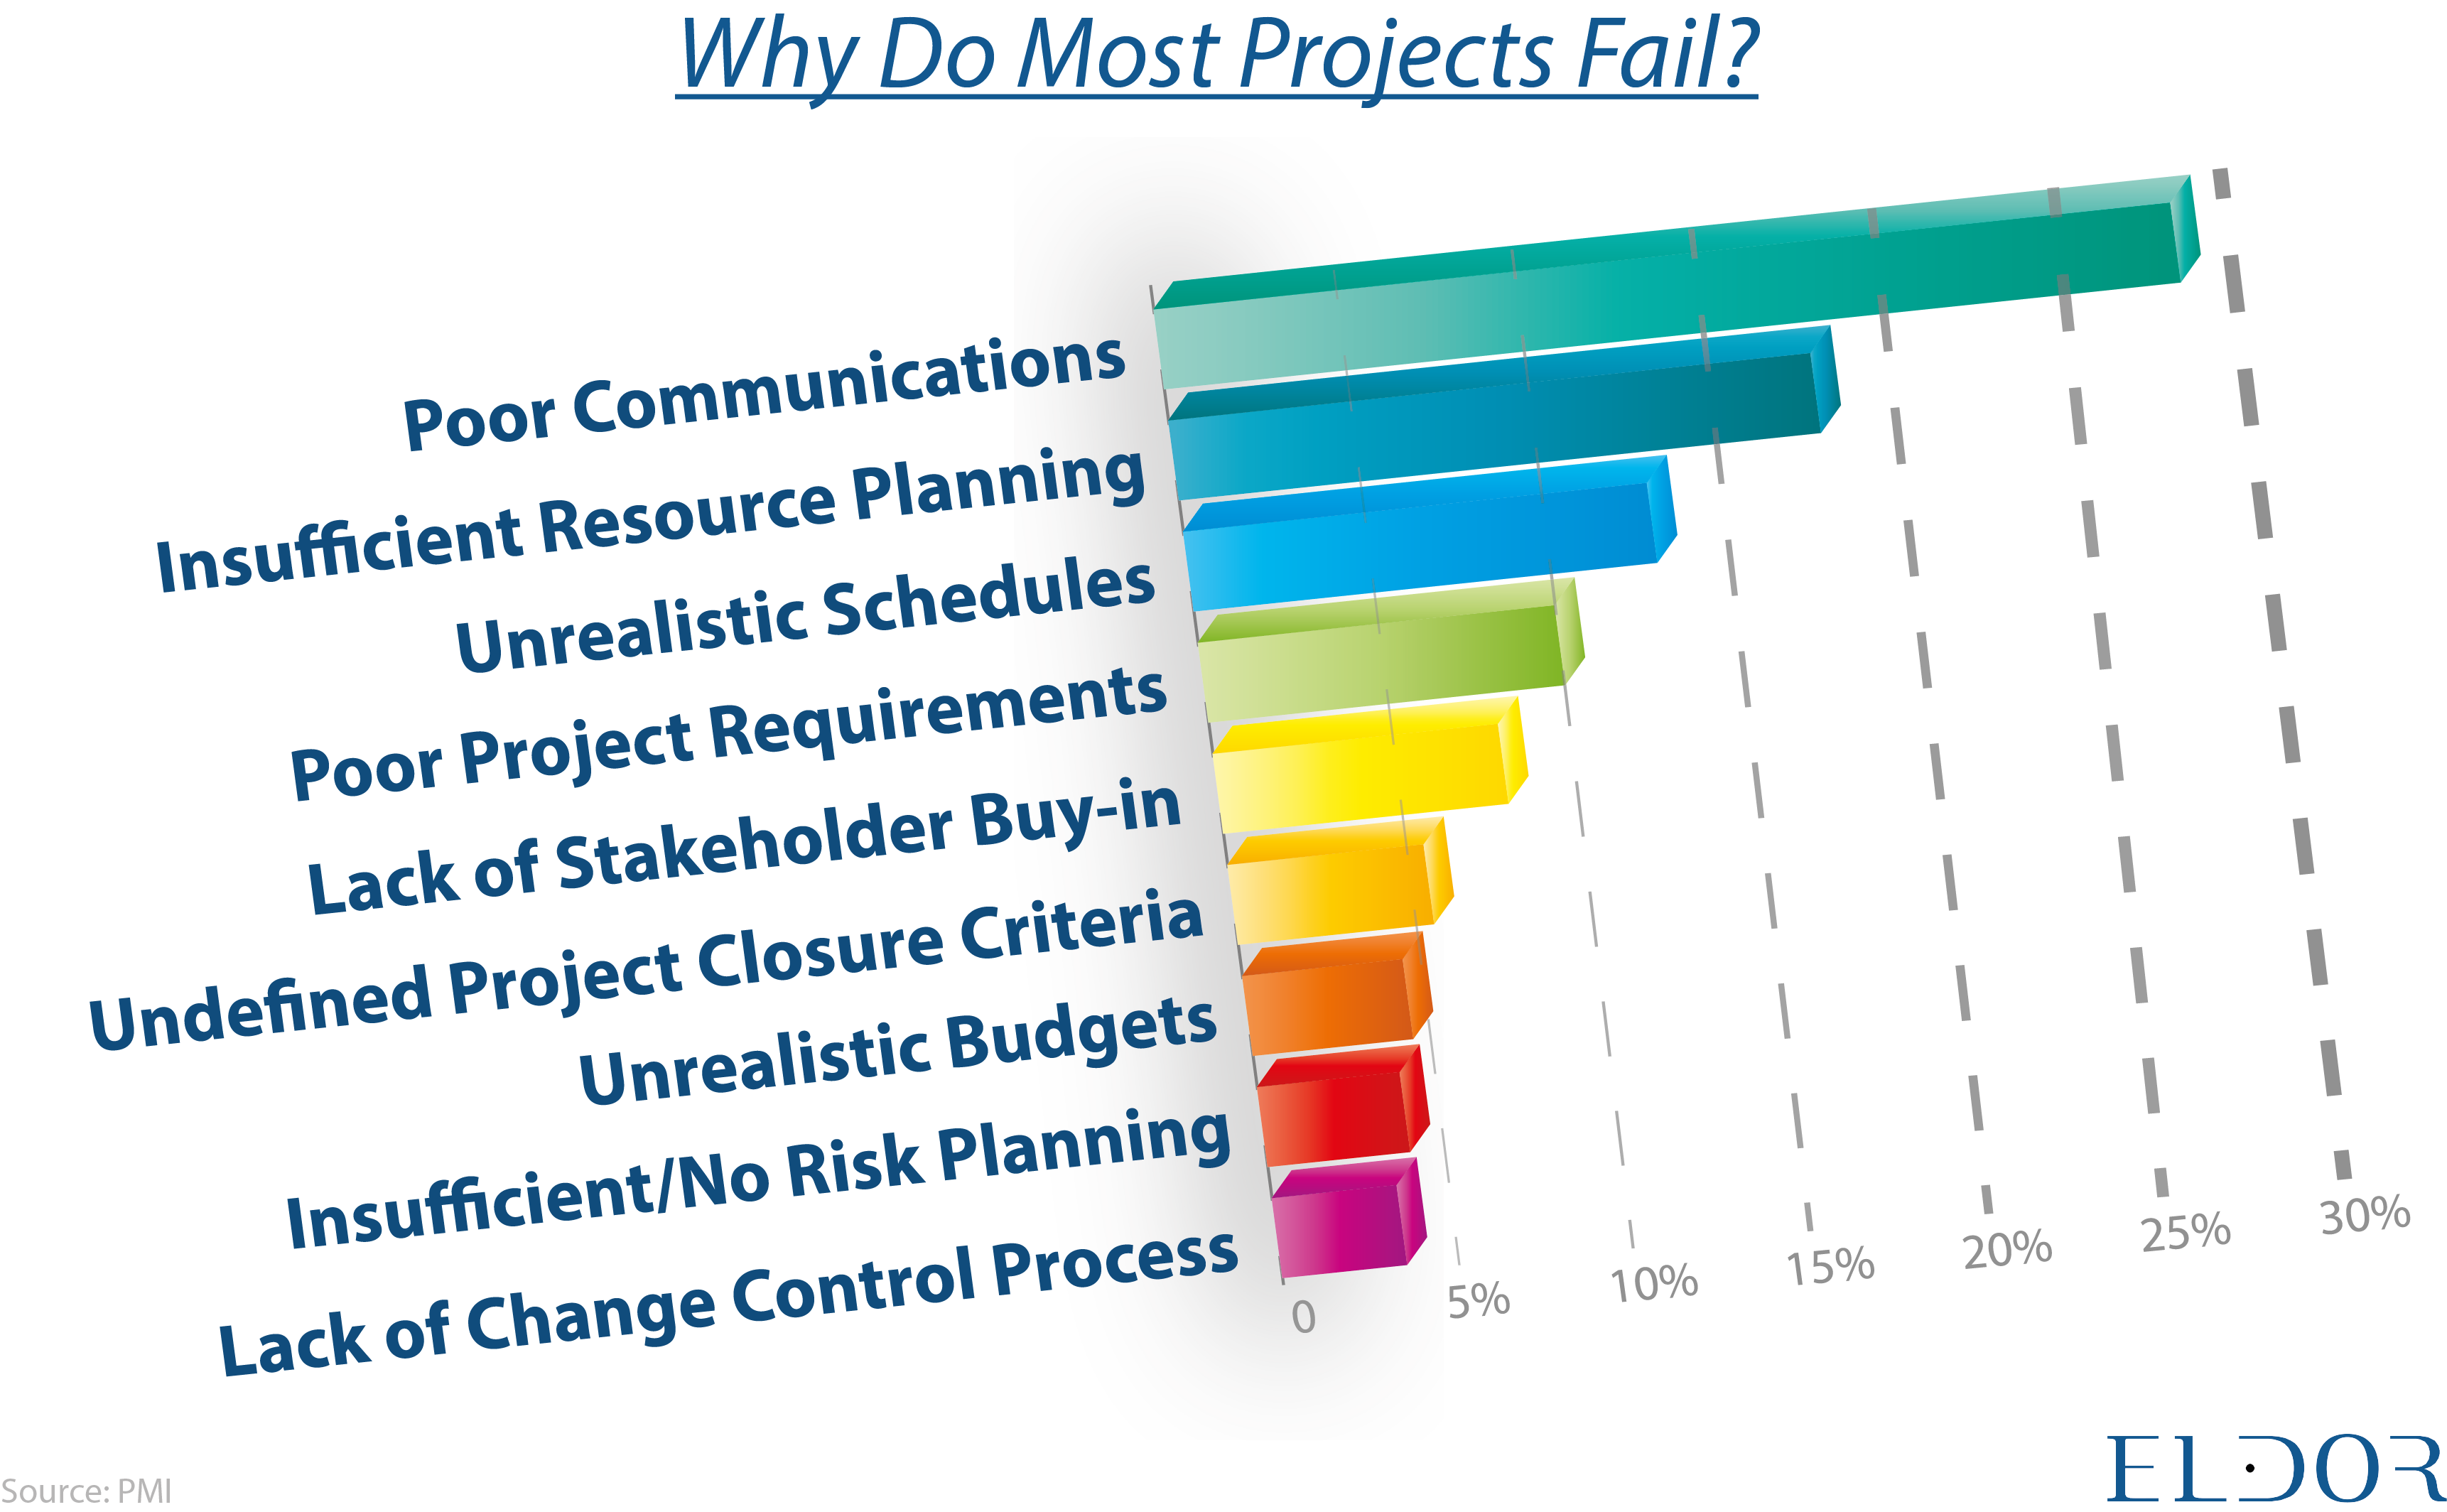 poor communication, insufficient resources, poor project requirements, unrealistic schedules, lack of stakeholder, undefined project criteria, unrealistic budgets.